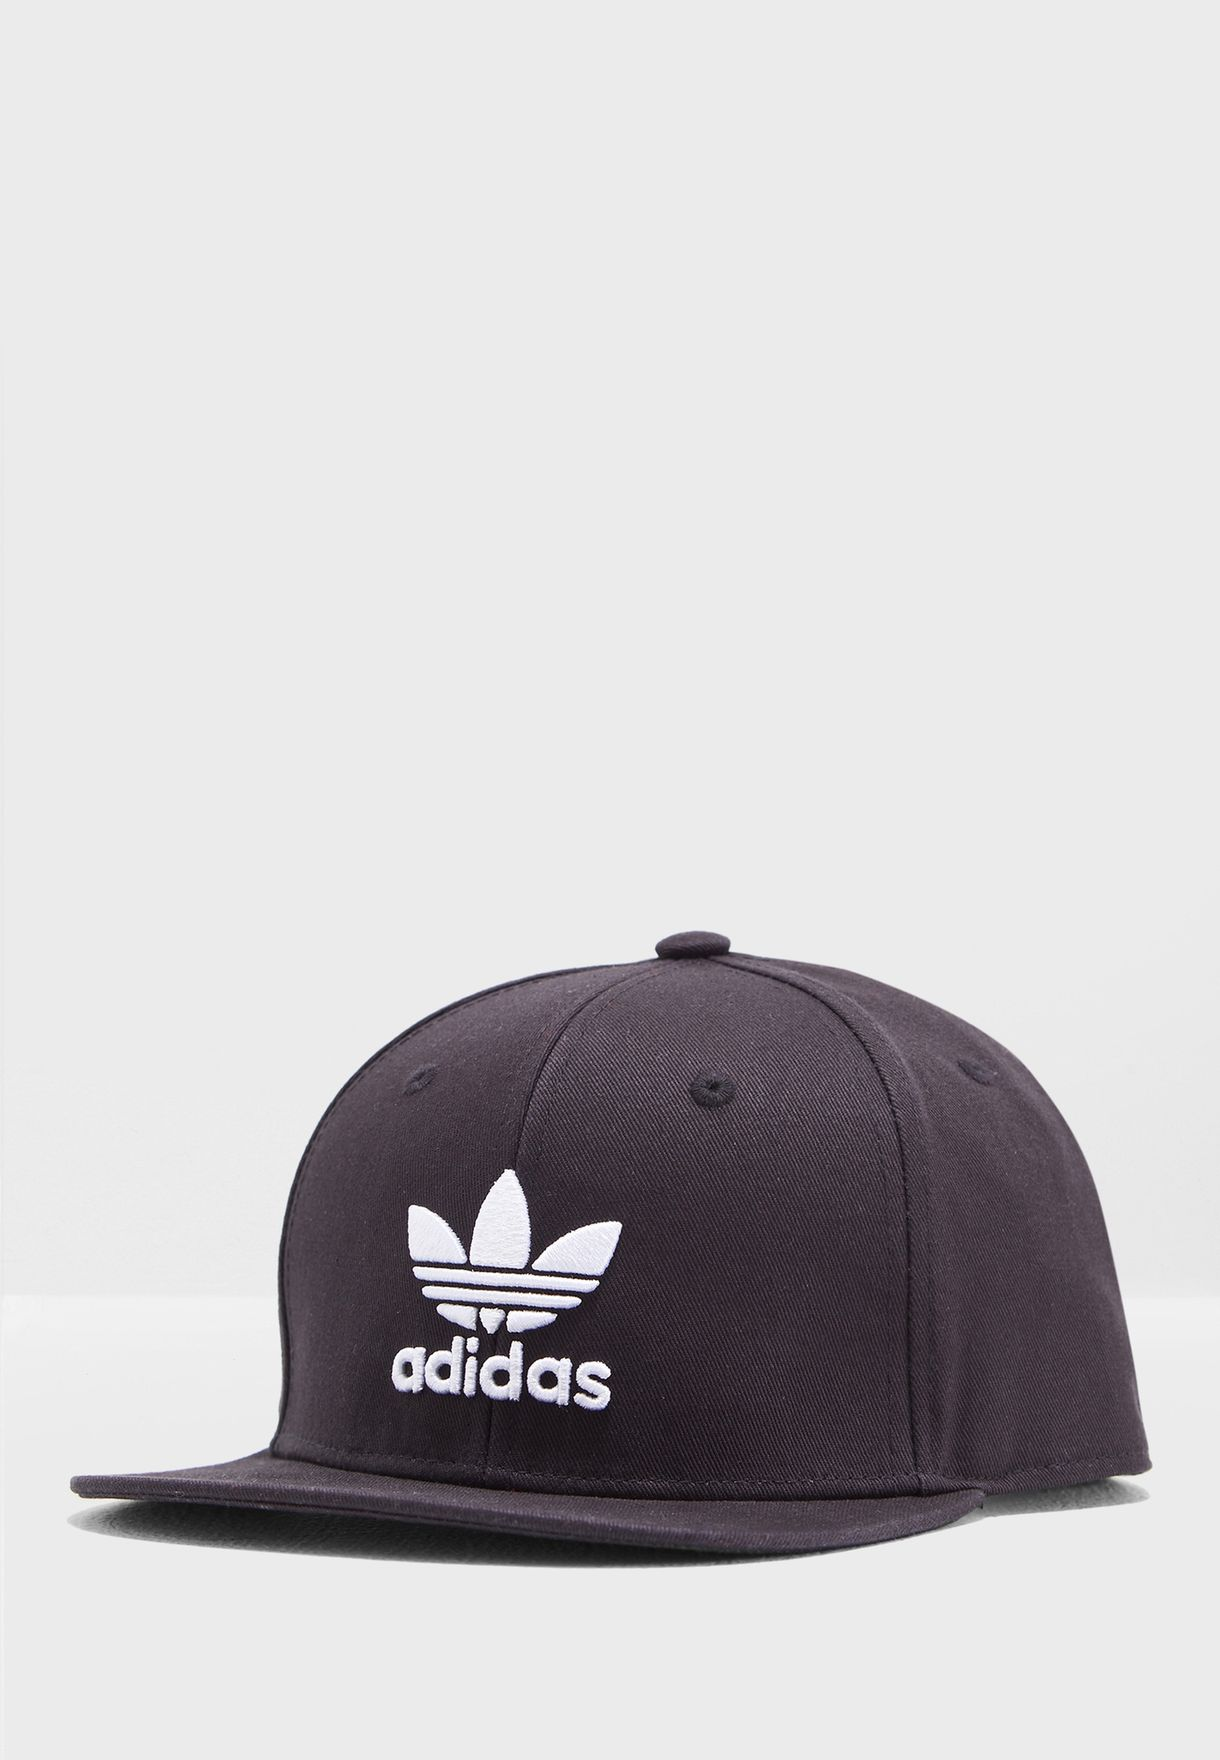 3a920f7a198a3 Shop adidas Originals black SB Classic Trefoil Cap DV0176 for Men in ...